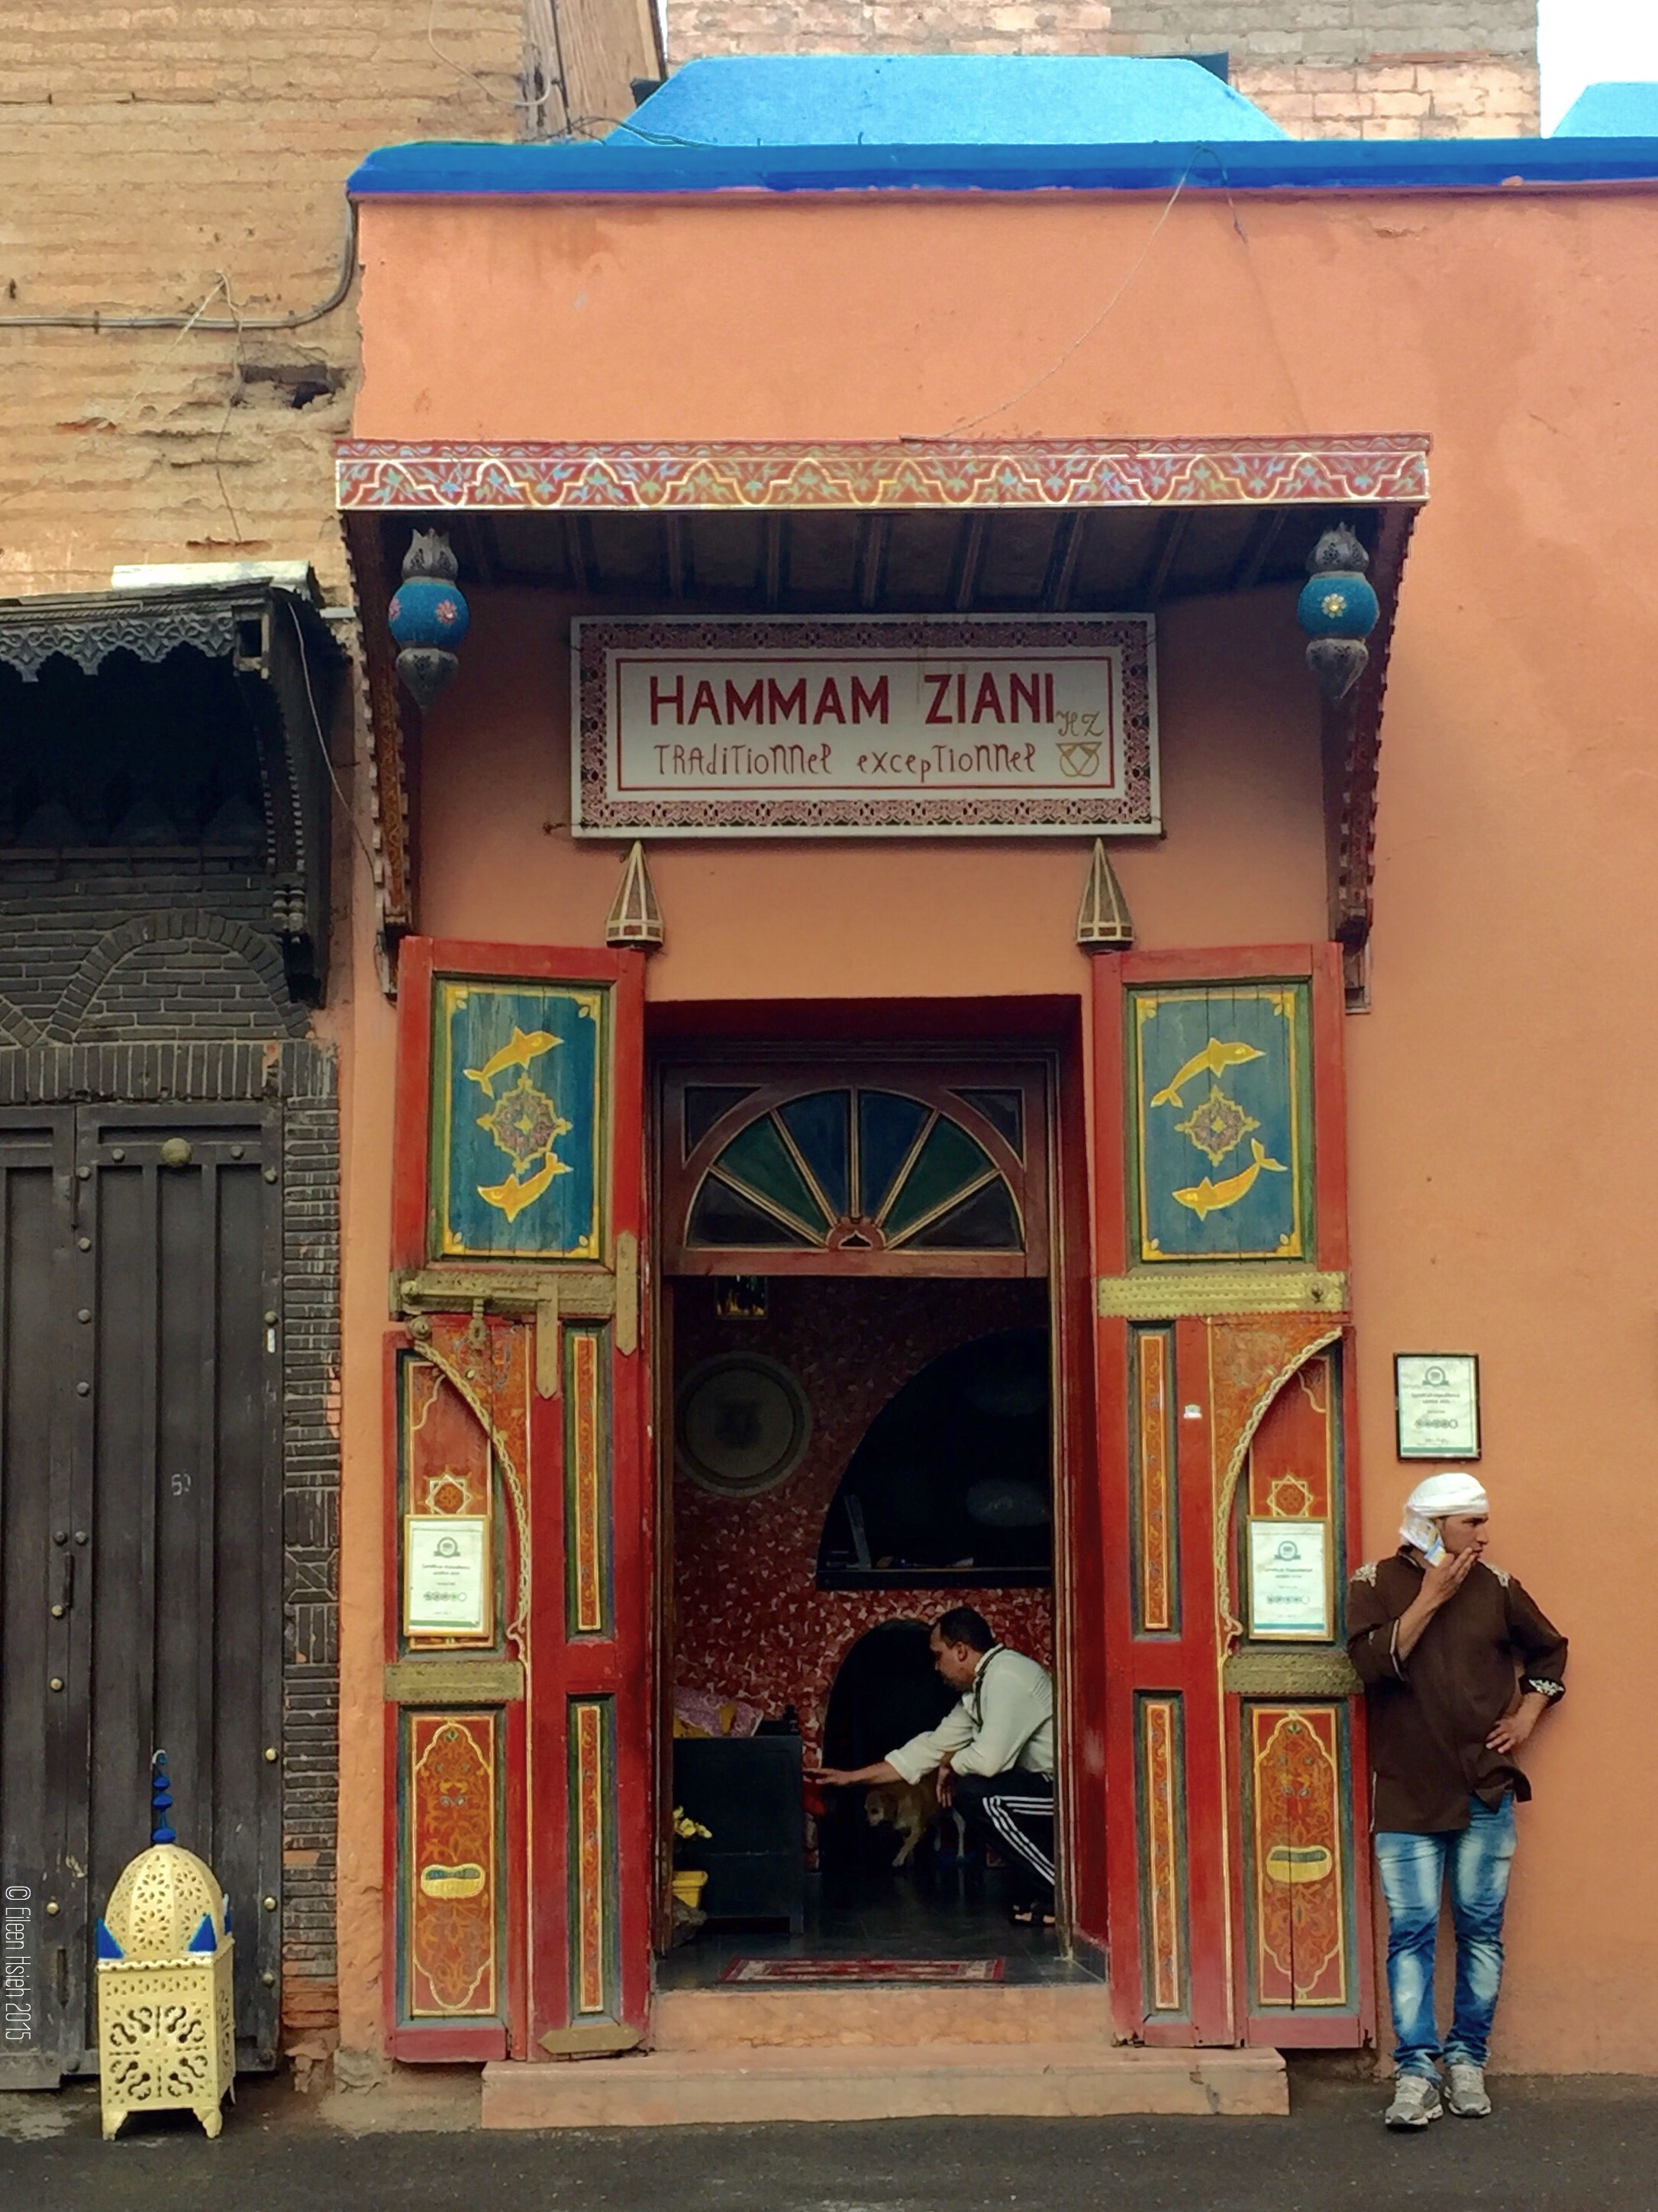 Entrance of a traditional Moroccan hammam bath house, where you can get the most thorough body scrub and come out shiny and new.摩洛哥 傳統 澡堂的入口,進去被刮掉一層皮後(其實是汙垢啦),保證出來全身亮晶晶。